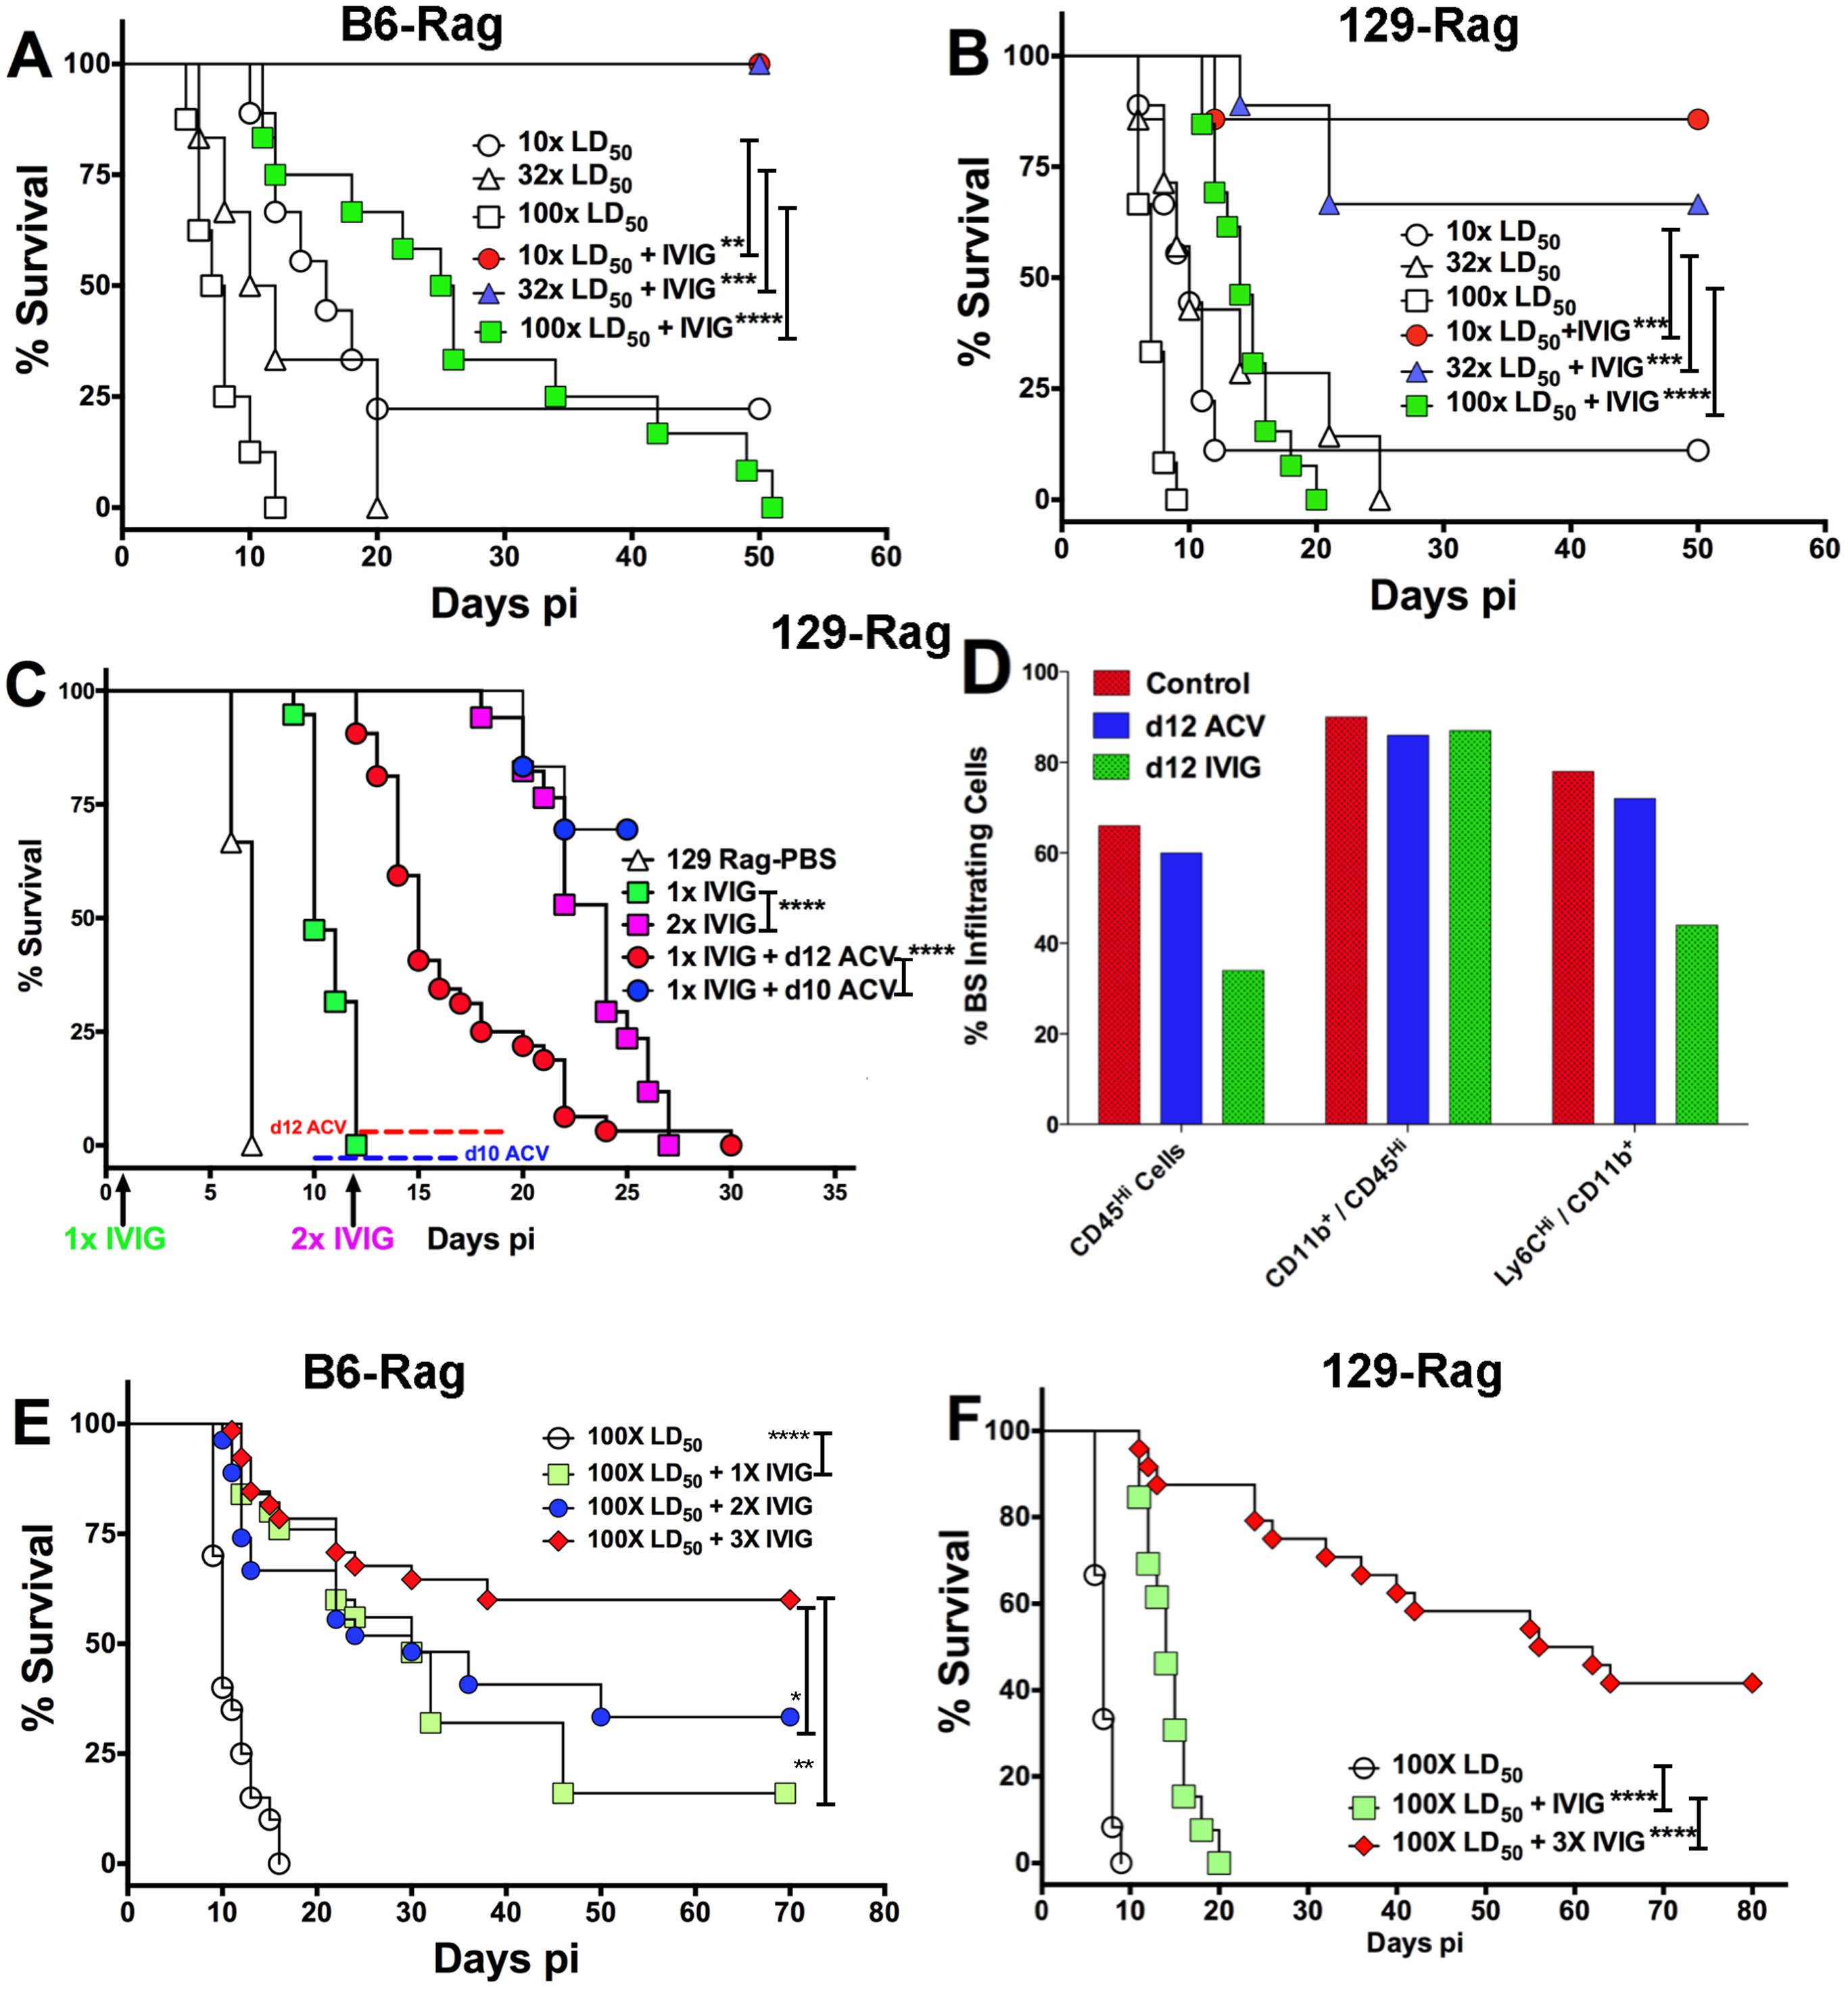 IVIG protection of Rag mice is HSV1 dose dependent.